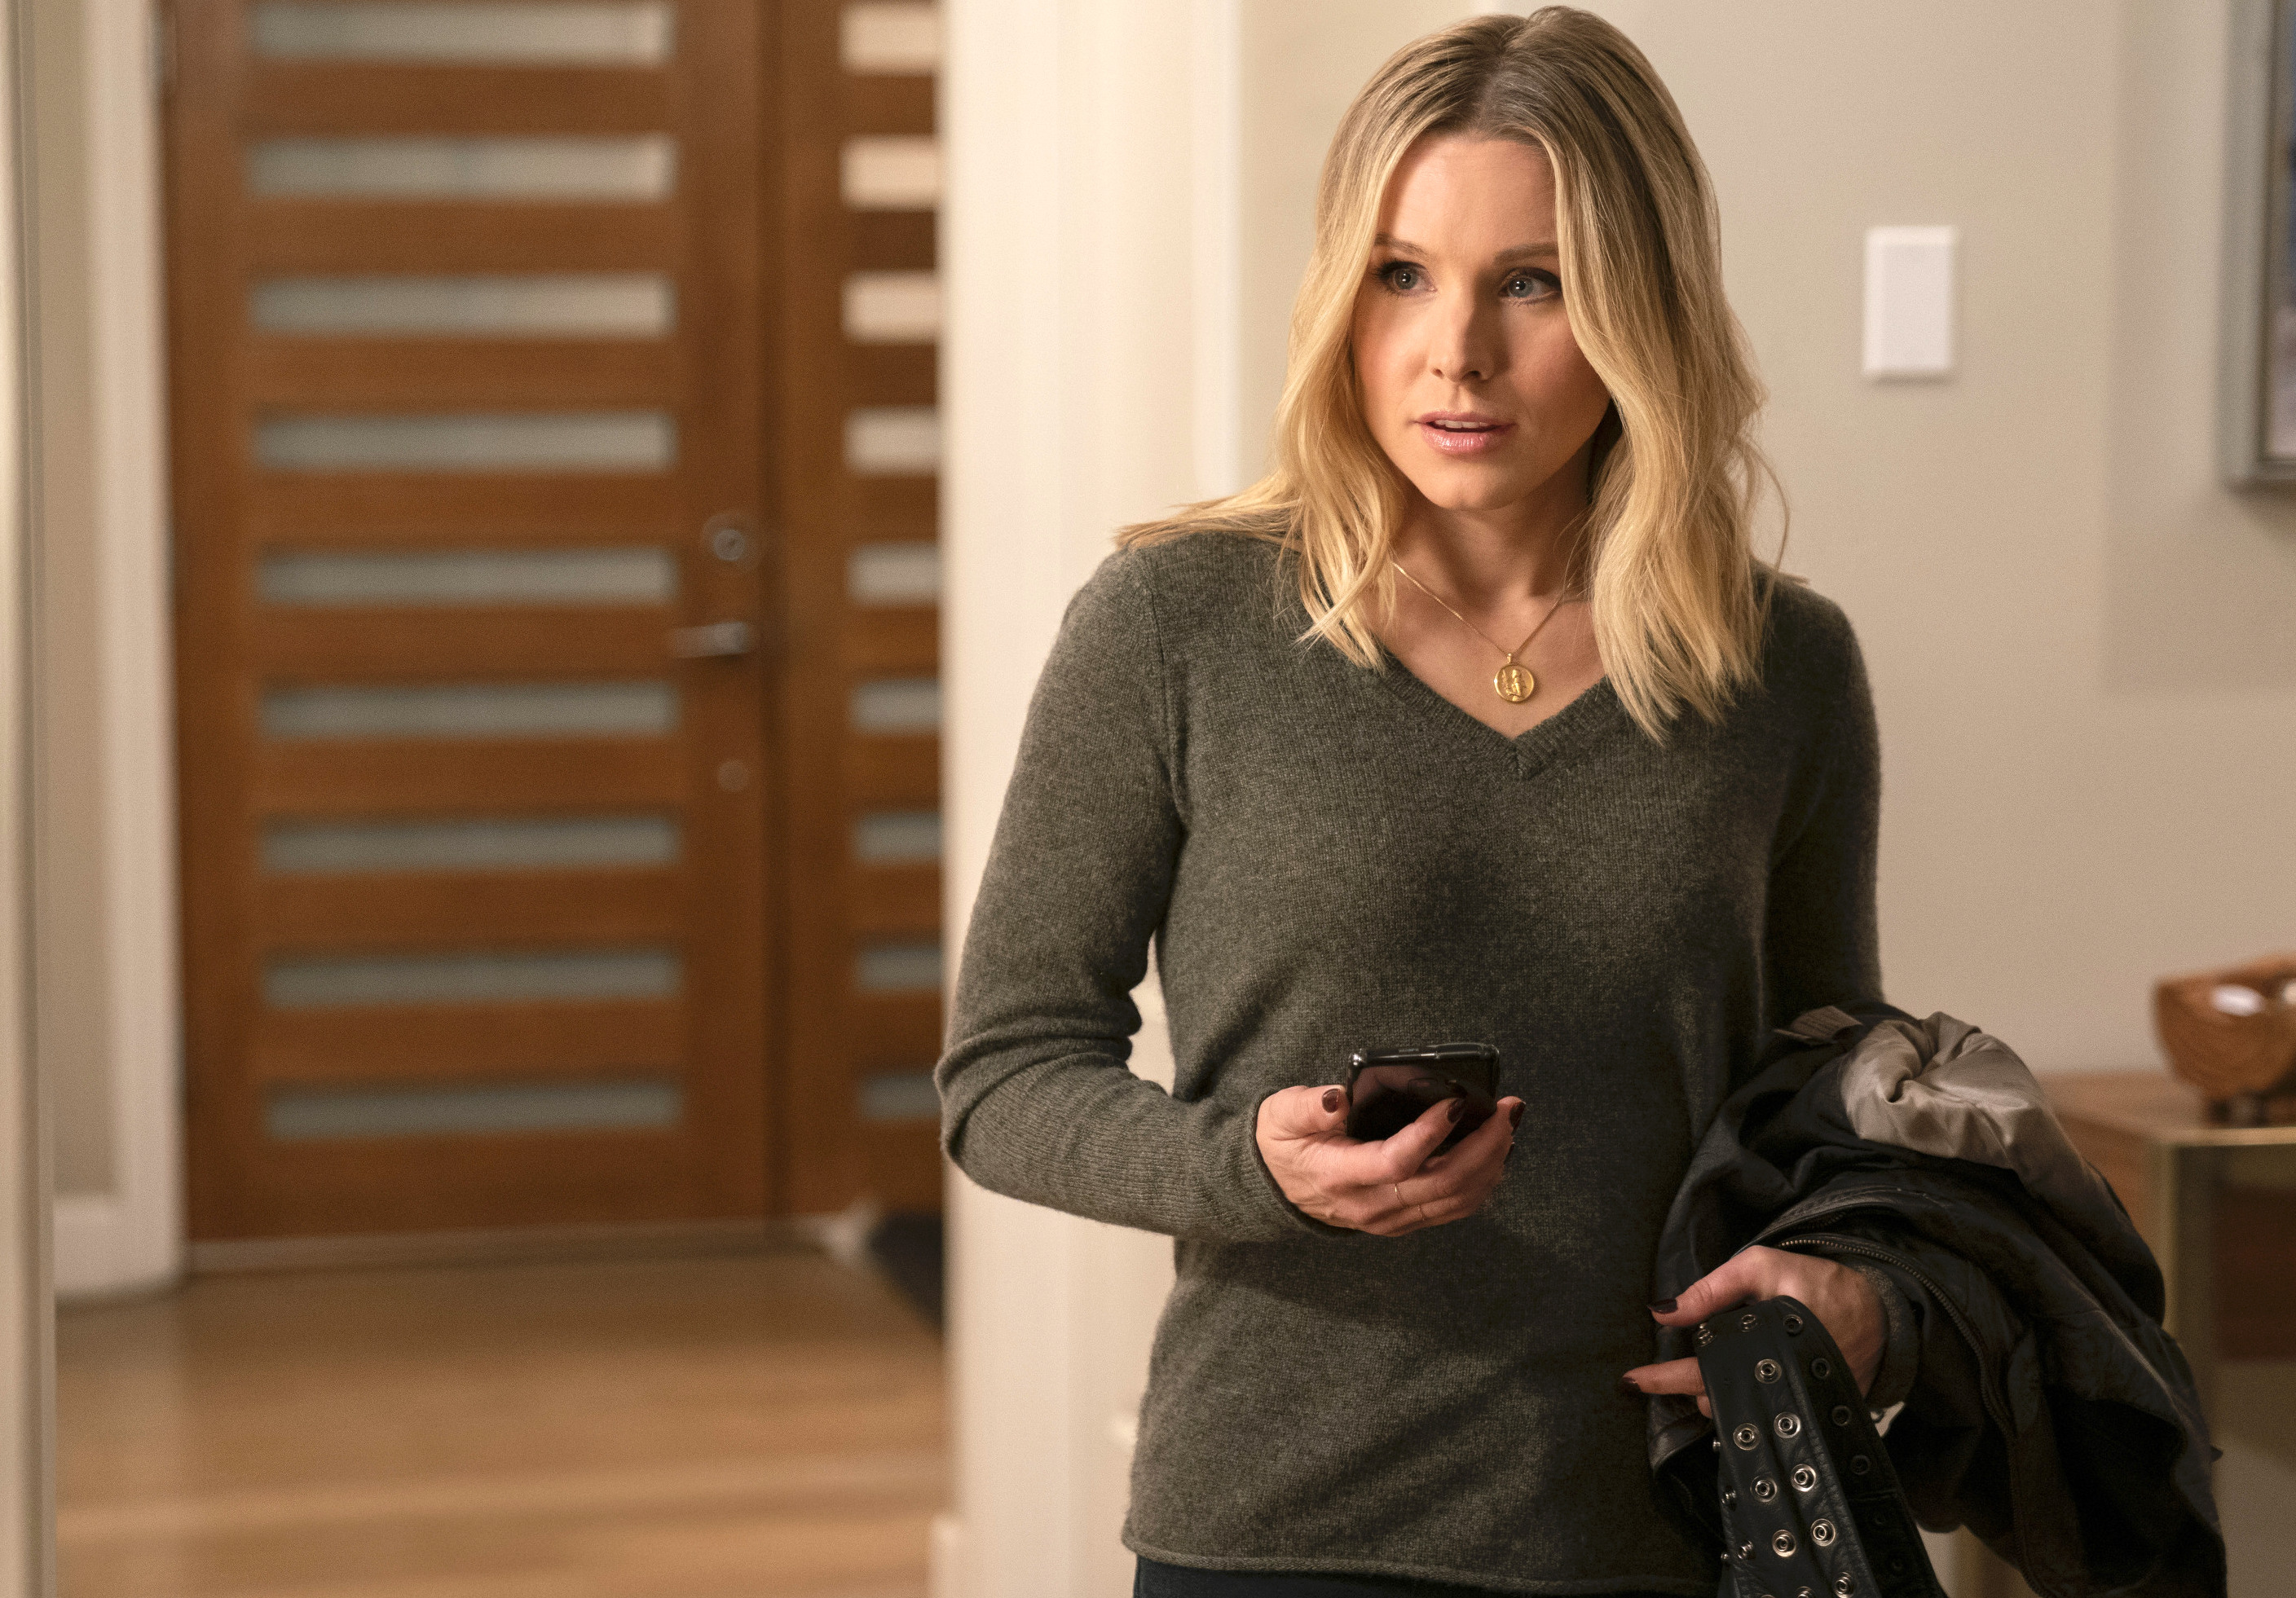 'Veronica Mars' to 'The OA': How the Surprise Release Model Impacts Show Success